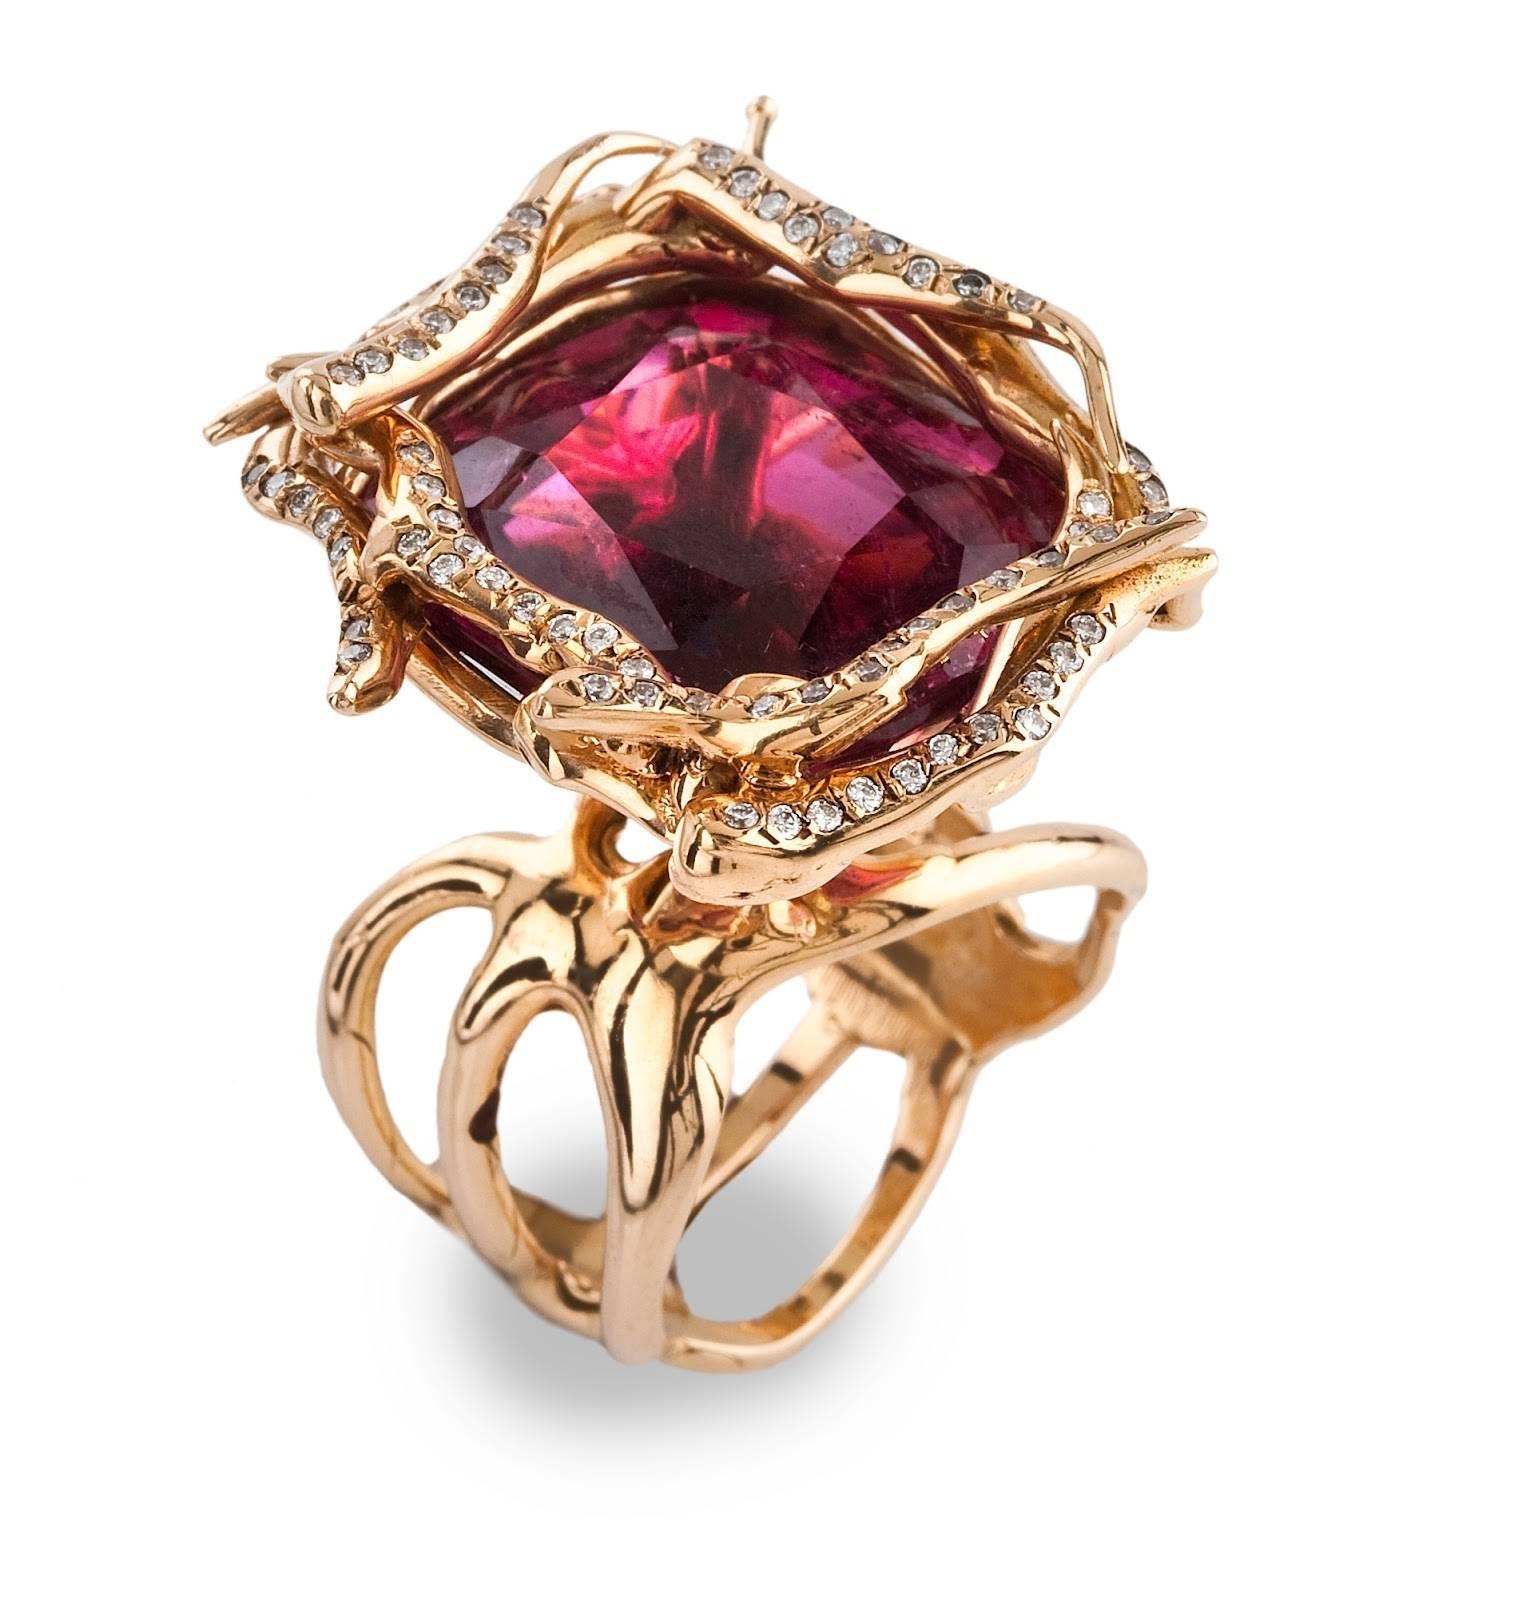 Rose Gold And Ruby Rings Lovely Jewelry News Network Tie The Knot Within Tie The Knot Engagement Rings (Gallery 8 of 15)